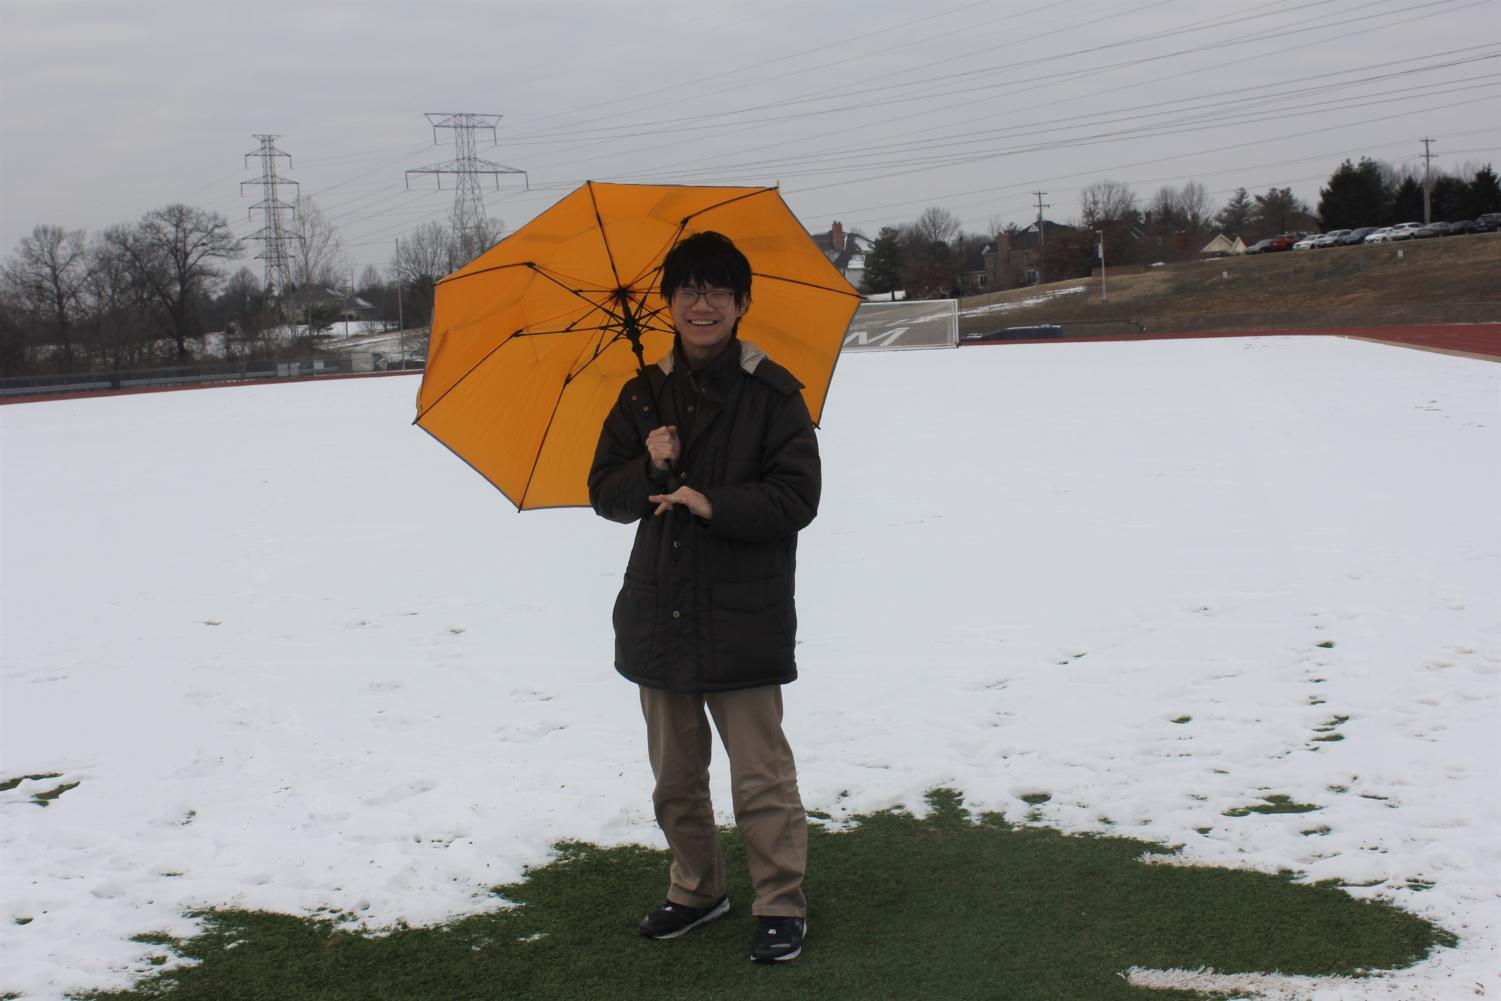 Clay Huang, sophomore, said he carries a yellow umbrella around with him in case it rains or snows.